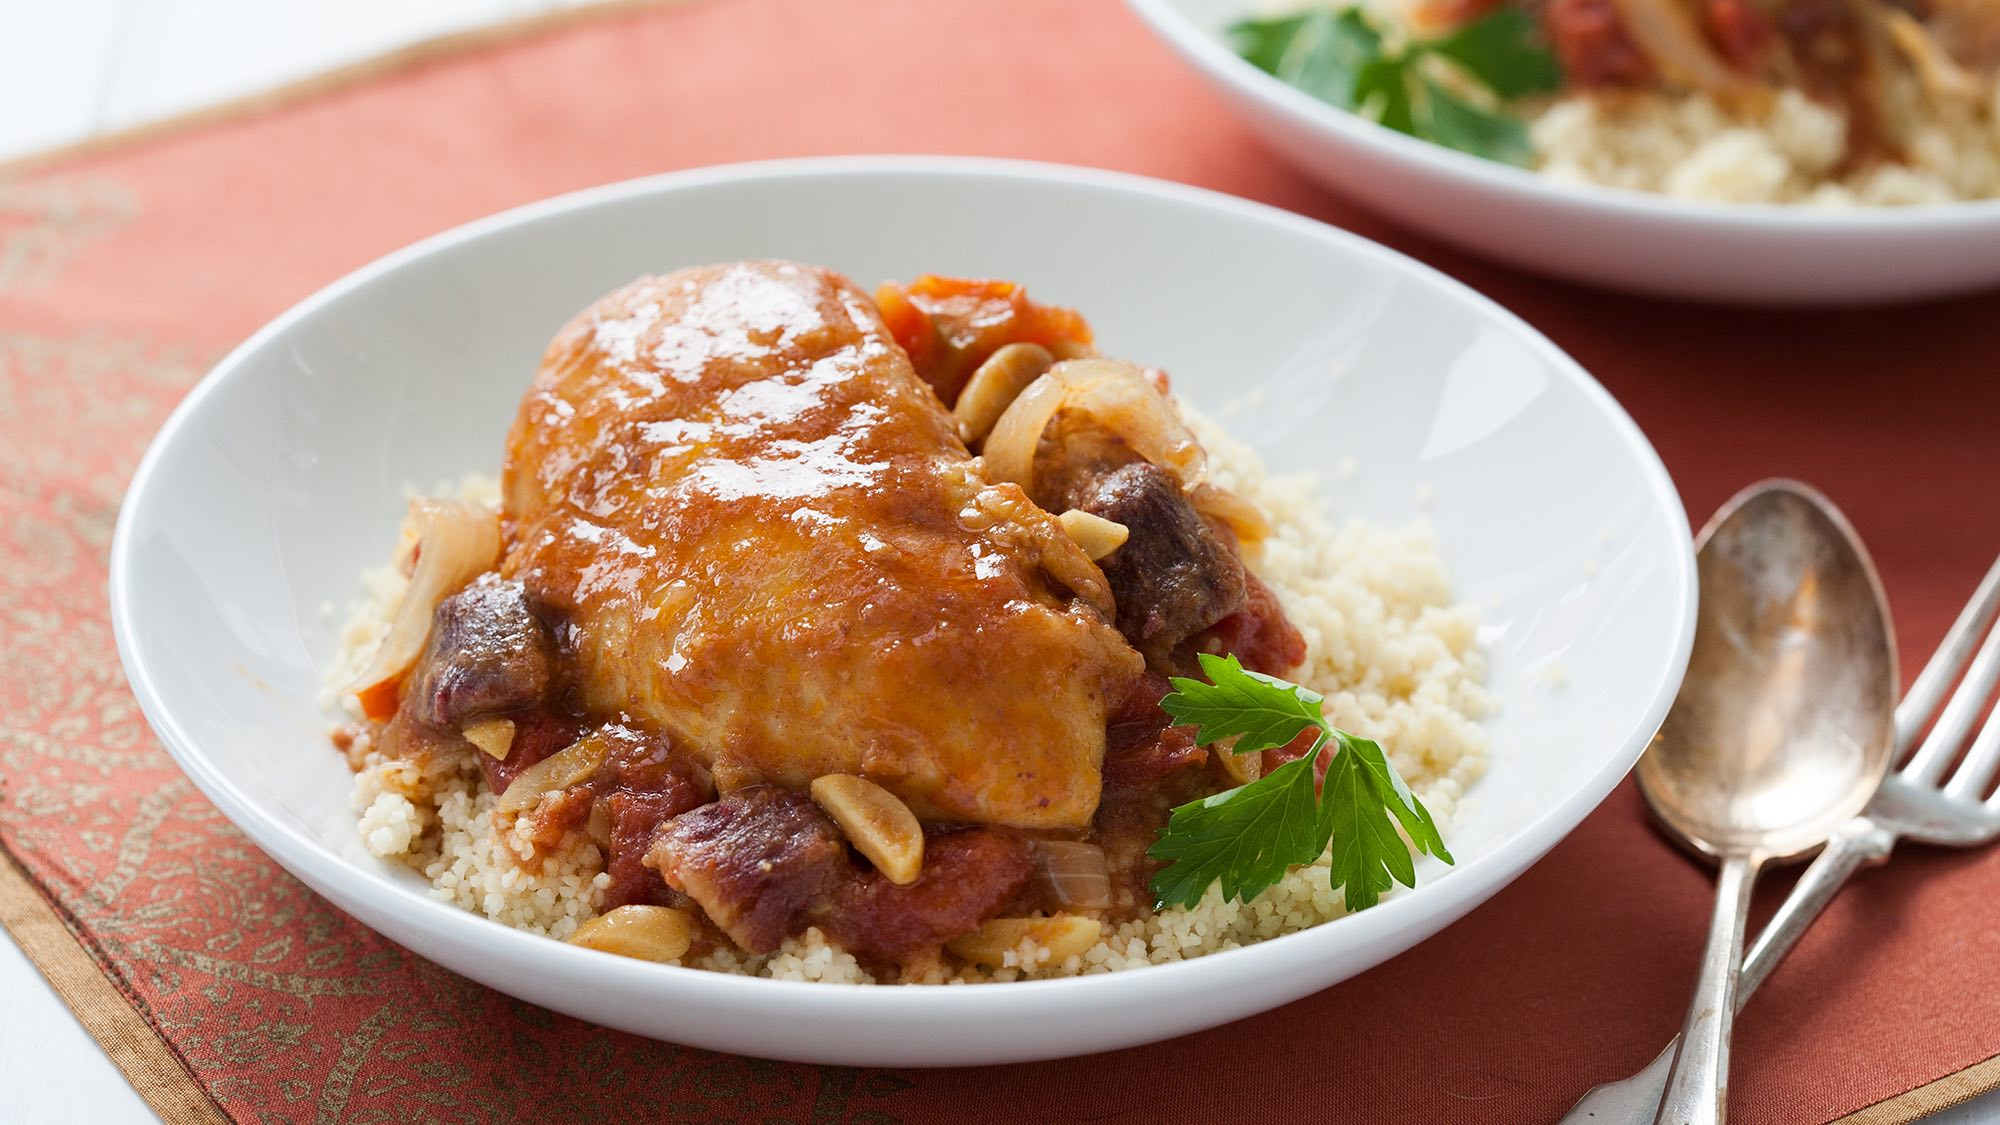 McCormick Saucy Moroccan Chicken